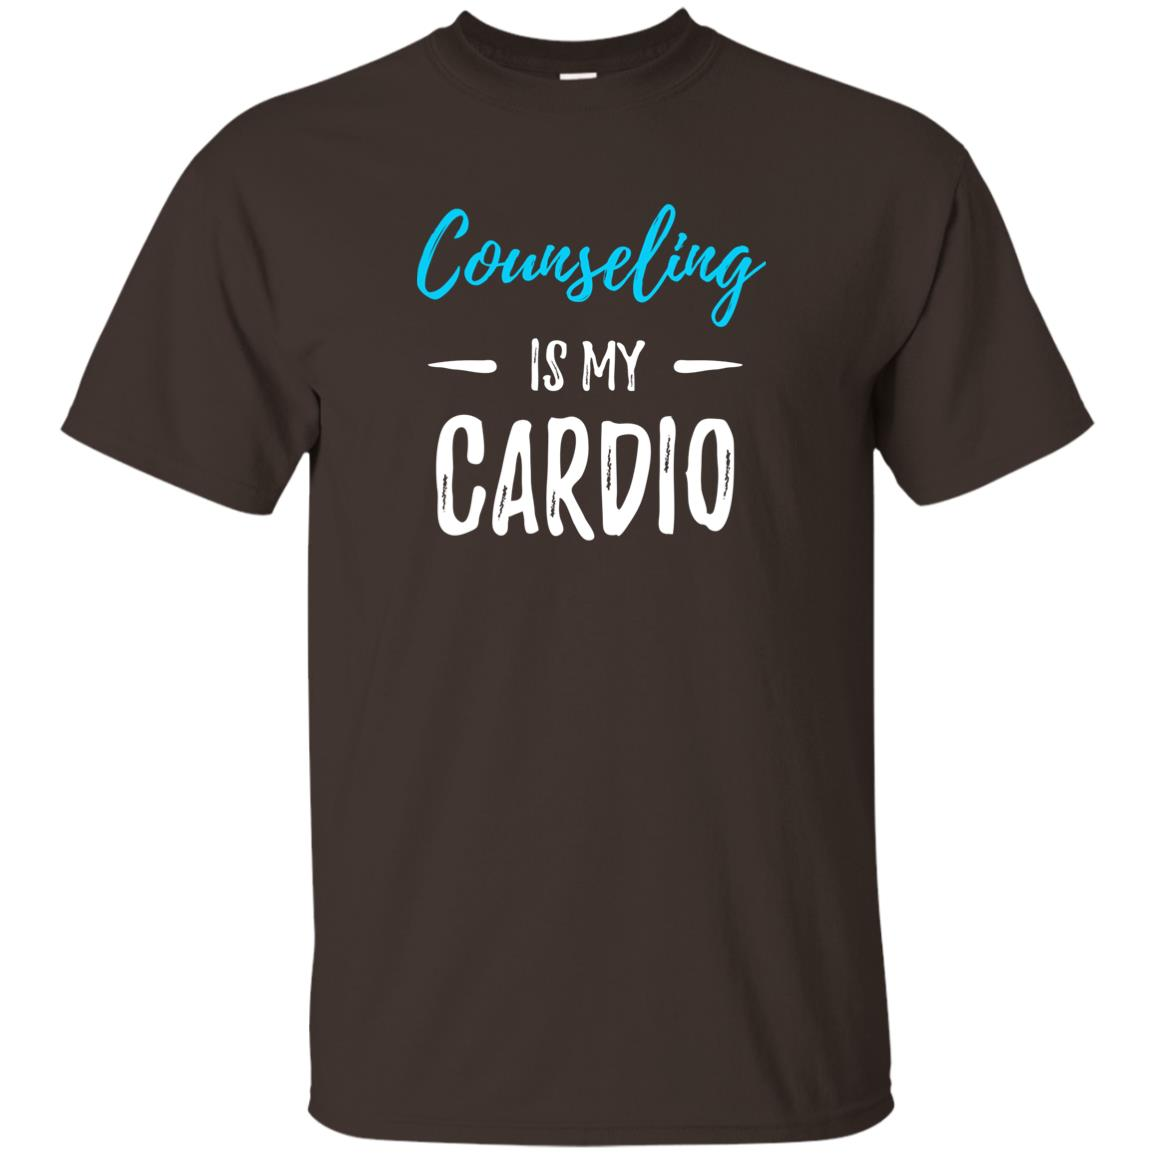 Counseling Cardio Funny Counselor Gift Unisex Short Sleeve